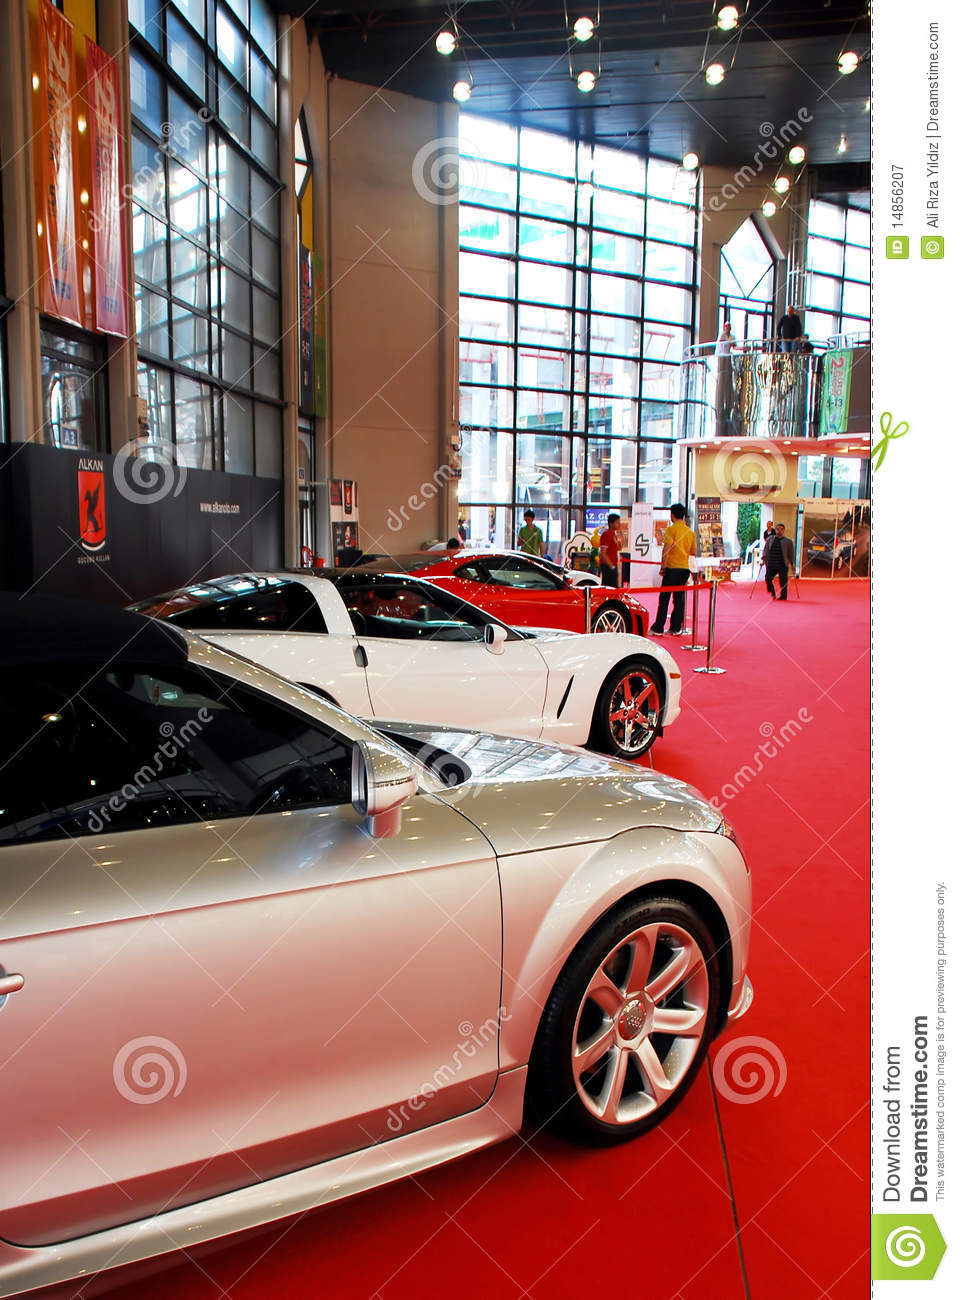 Sports car at the auto show